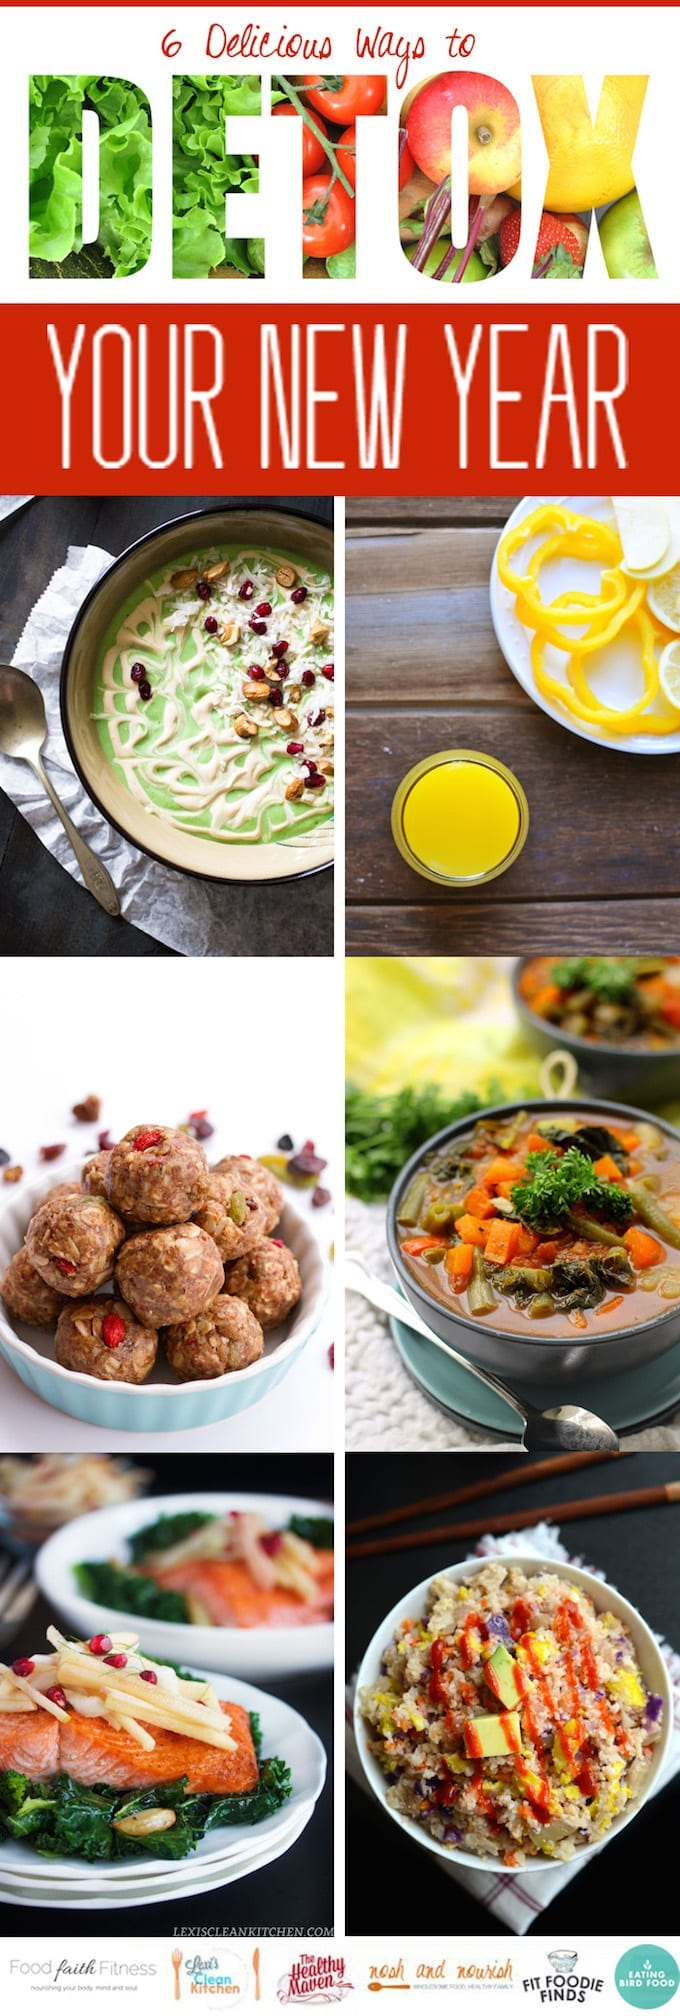 Detox your New Year with 6 healthy and nutritious recipes made from good, wholesome food!